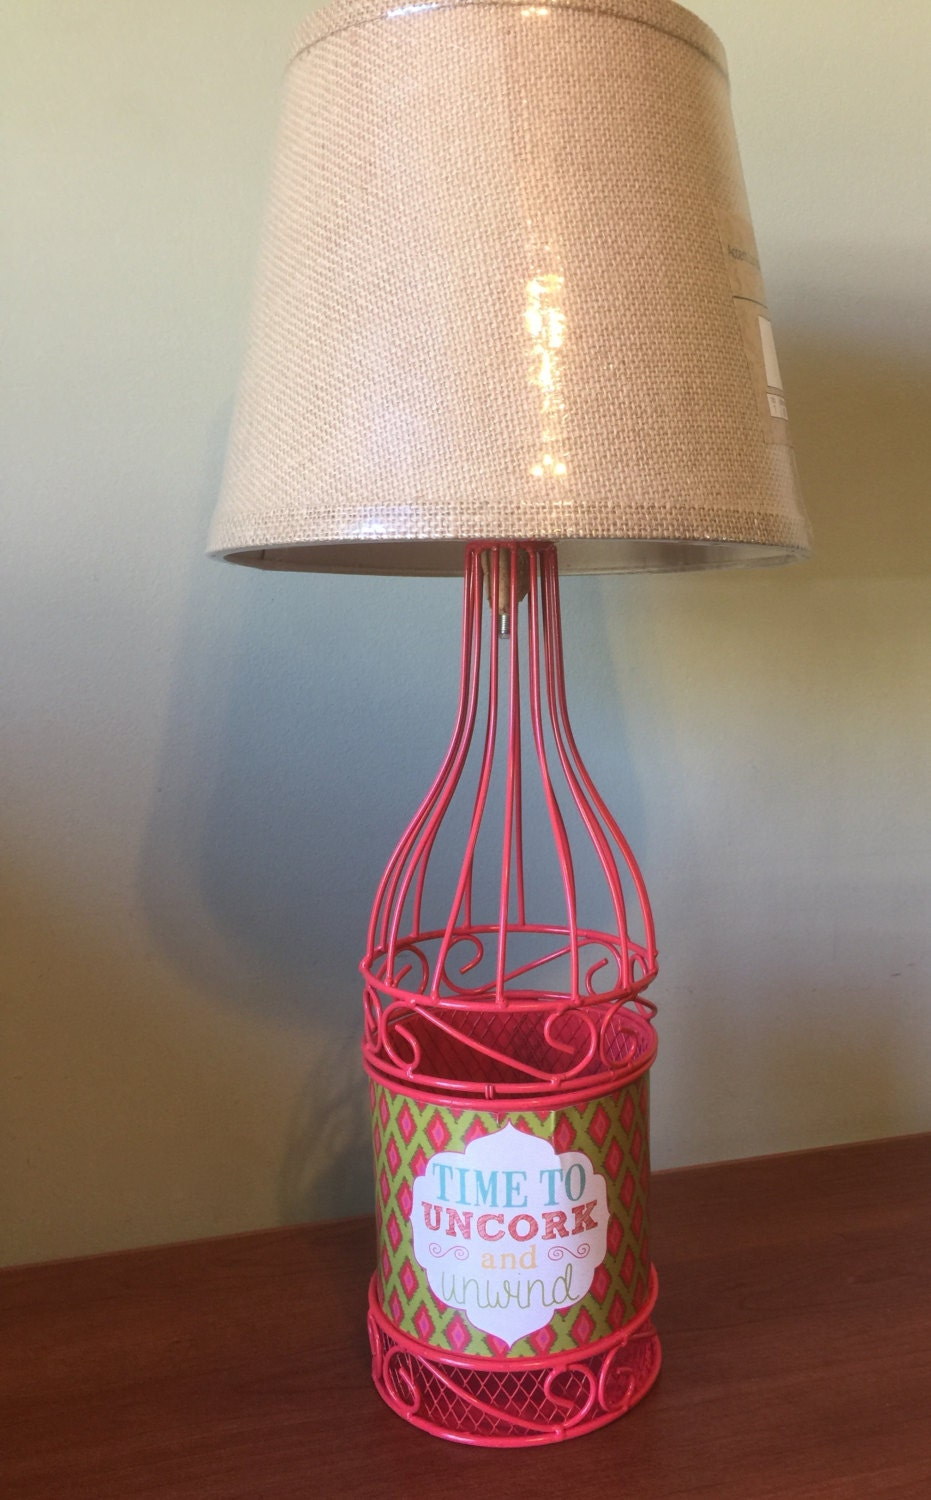 Pink time to uncork wine bottle shape wire cork holder table for Wine cork lampshade